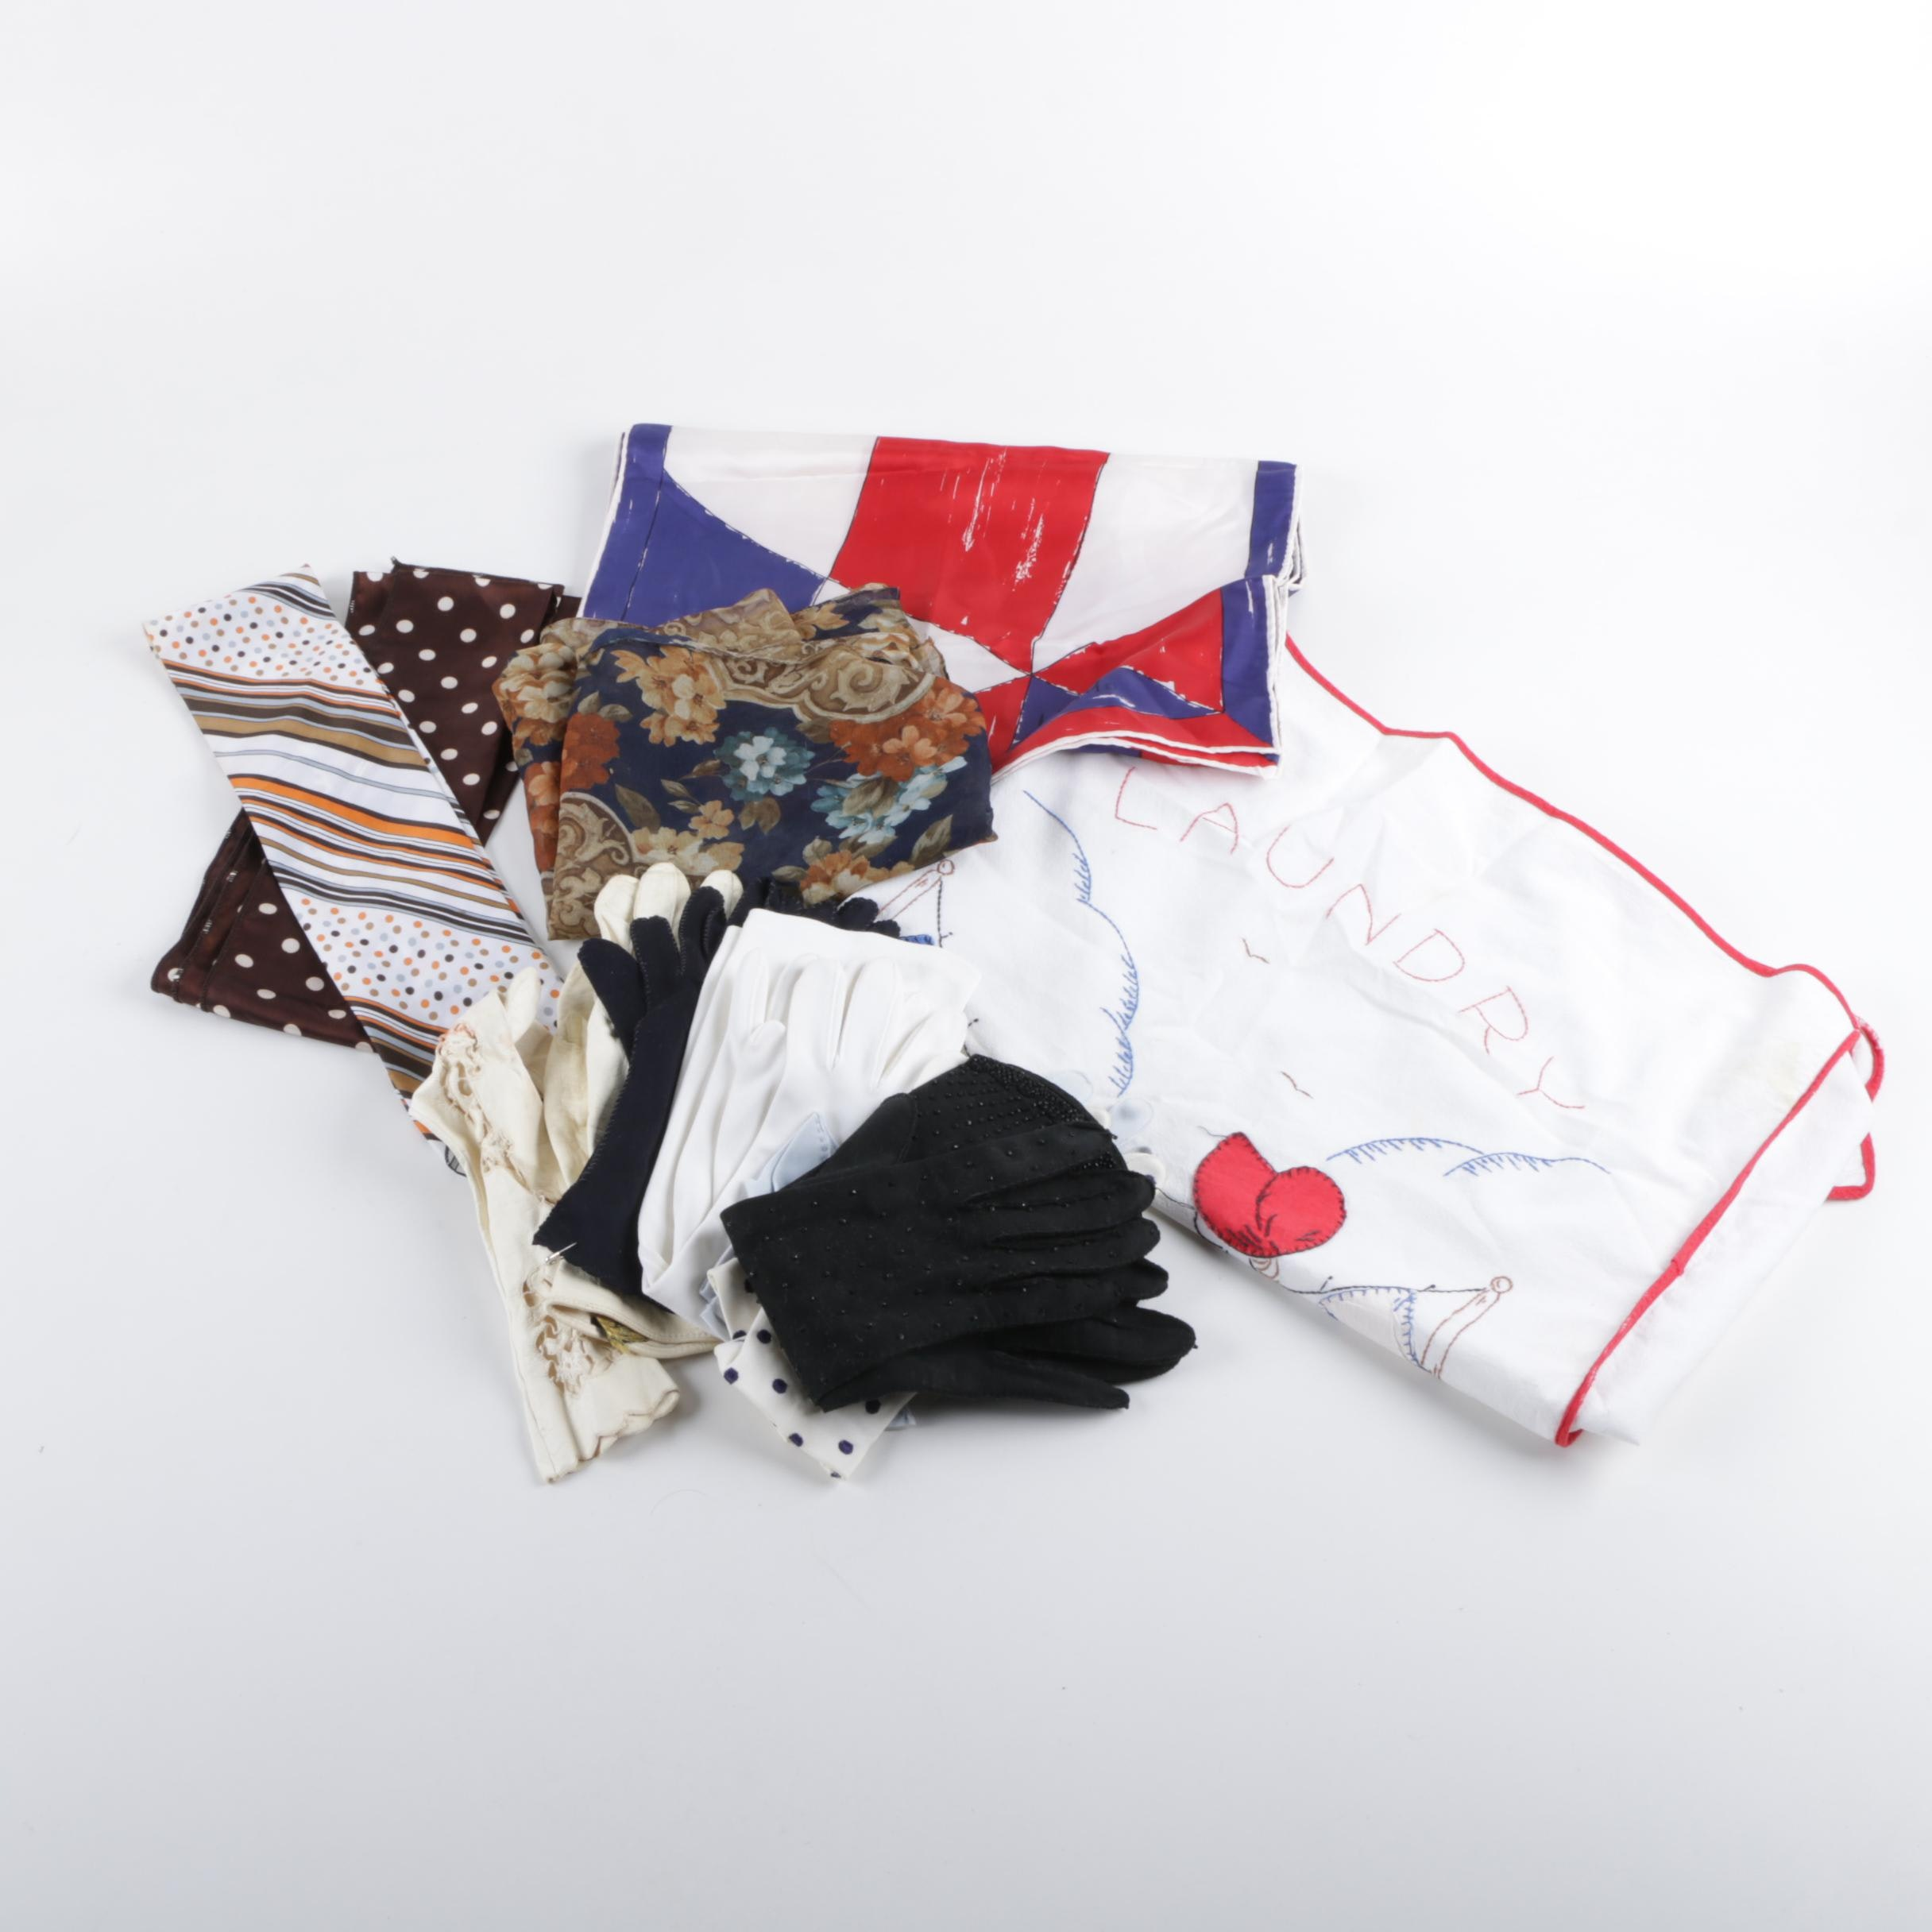 Women's Vintage Gloves and Scarves Including Vera and Laundry Bag